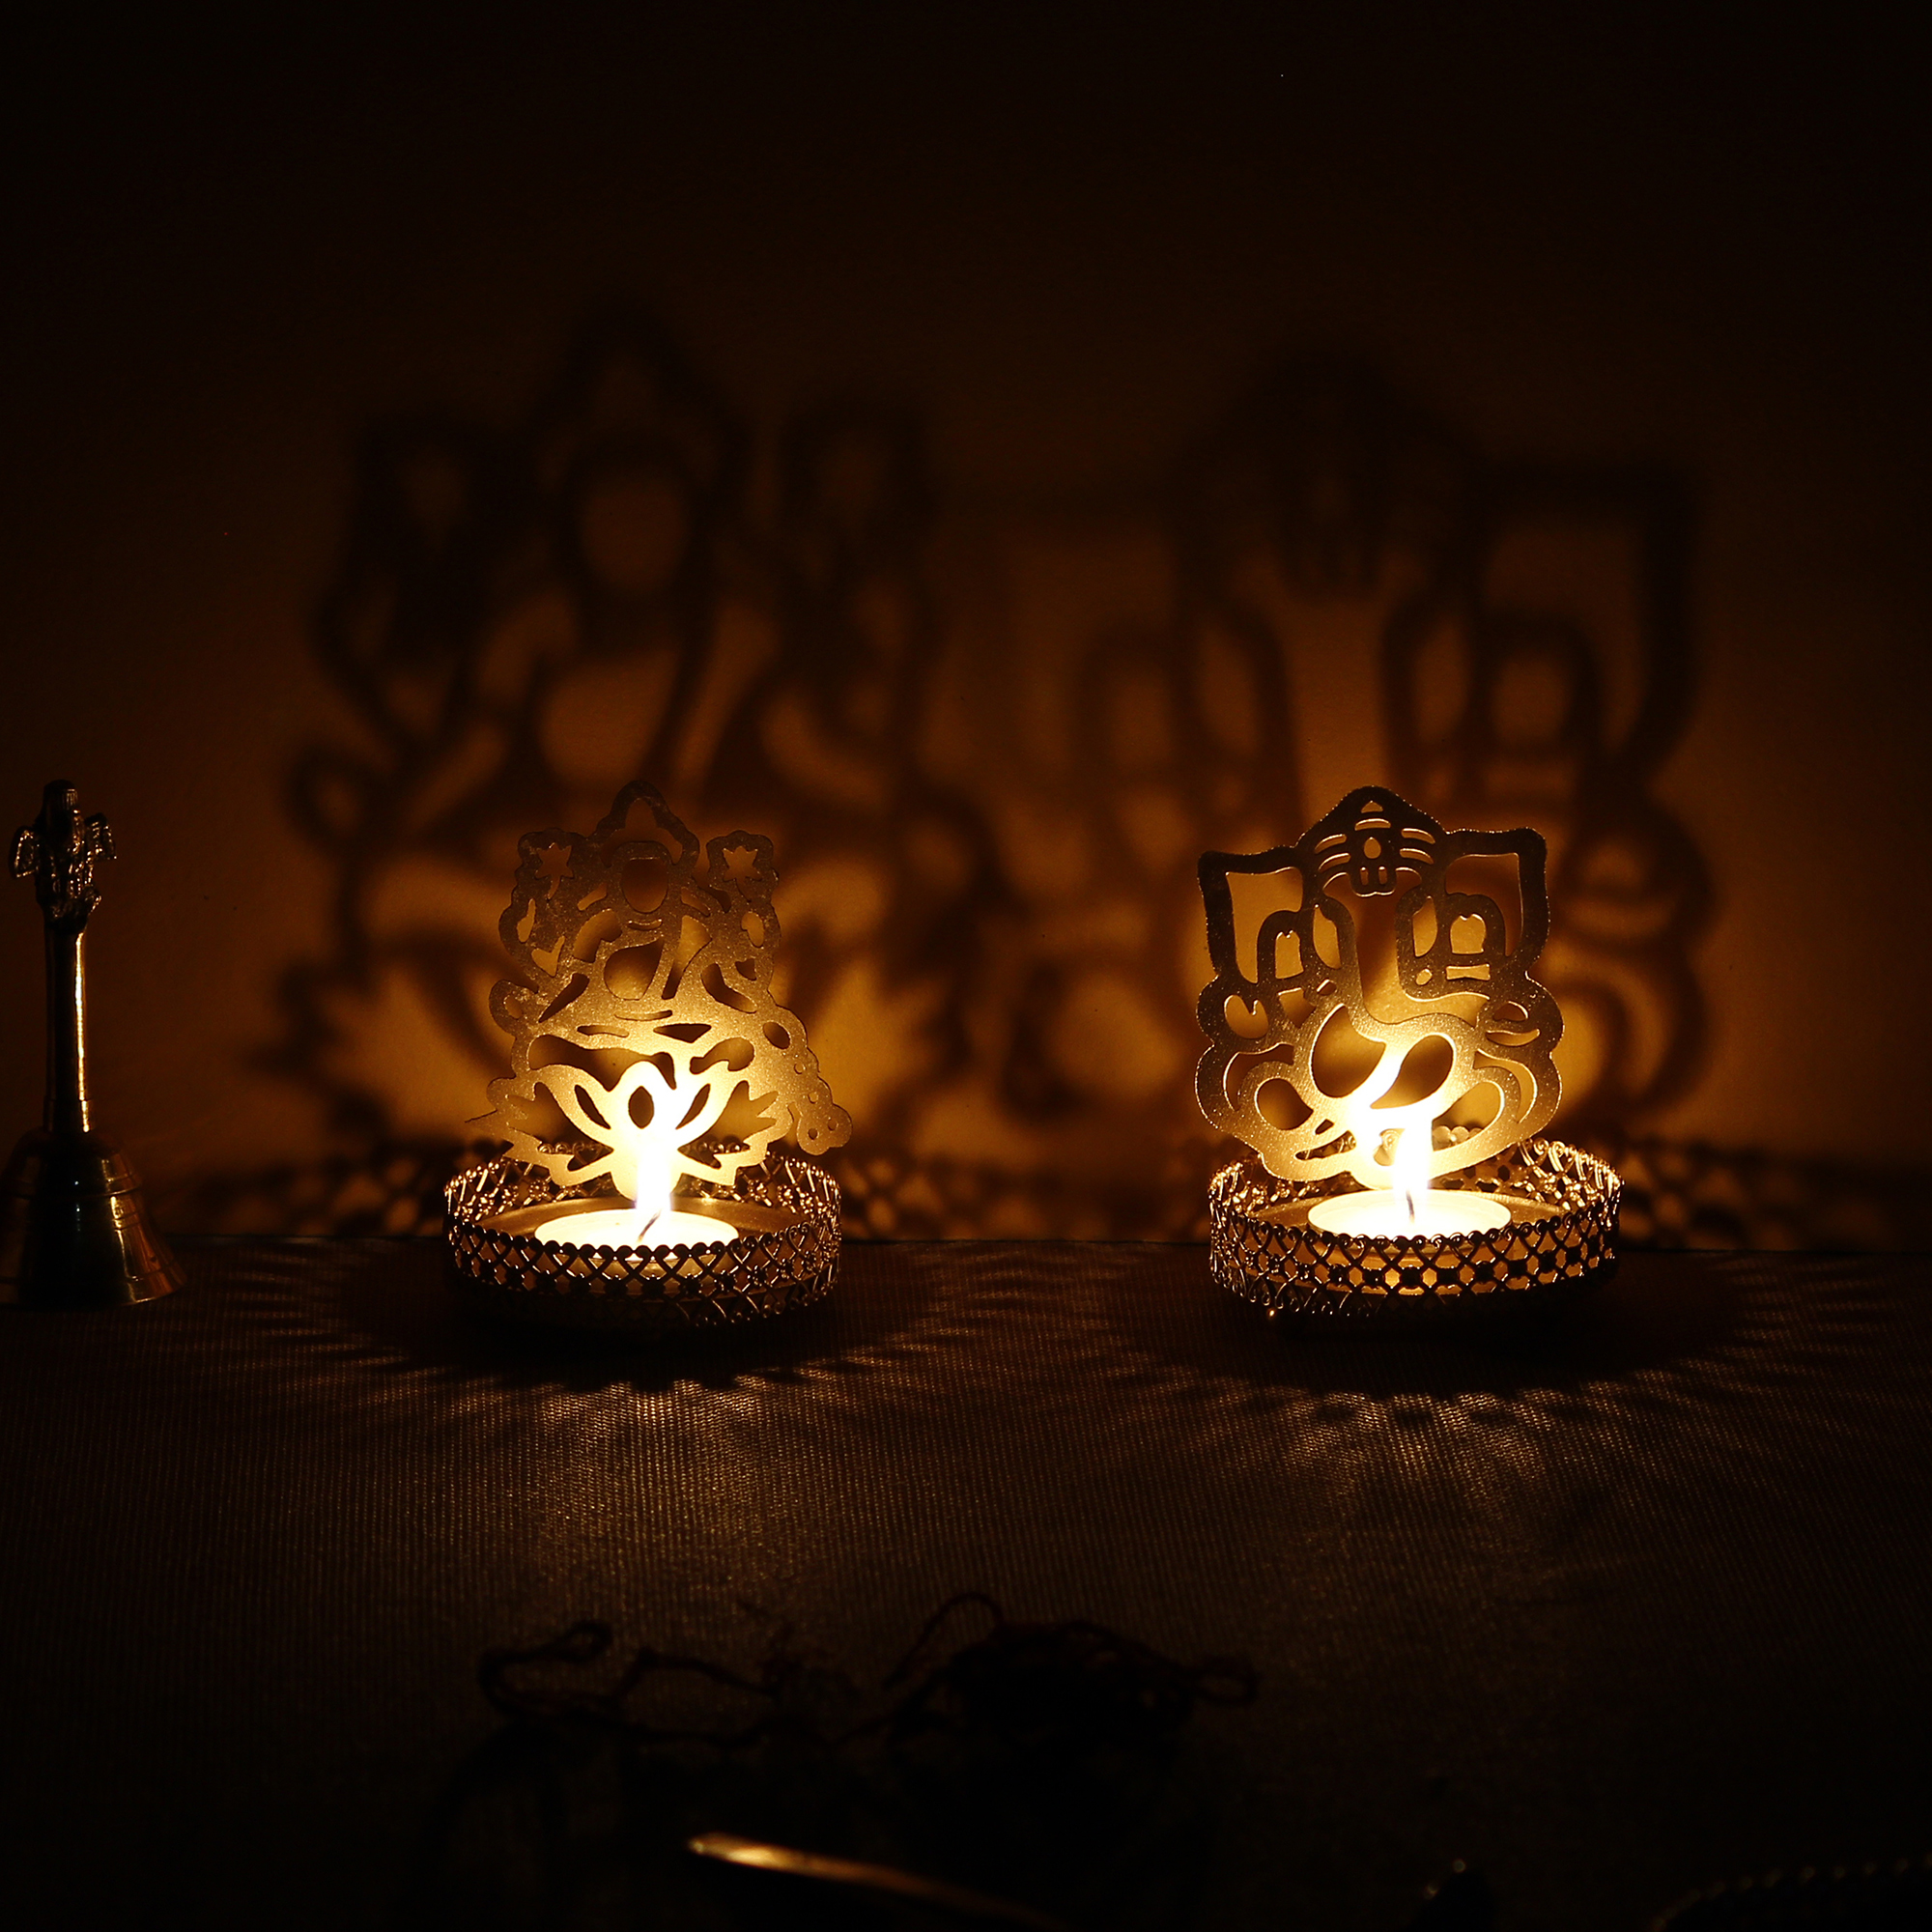 Lord Ganesha and Laxmi Shadow Tea Light Holder Indian Home Decor